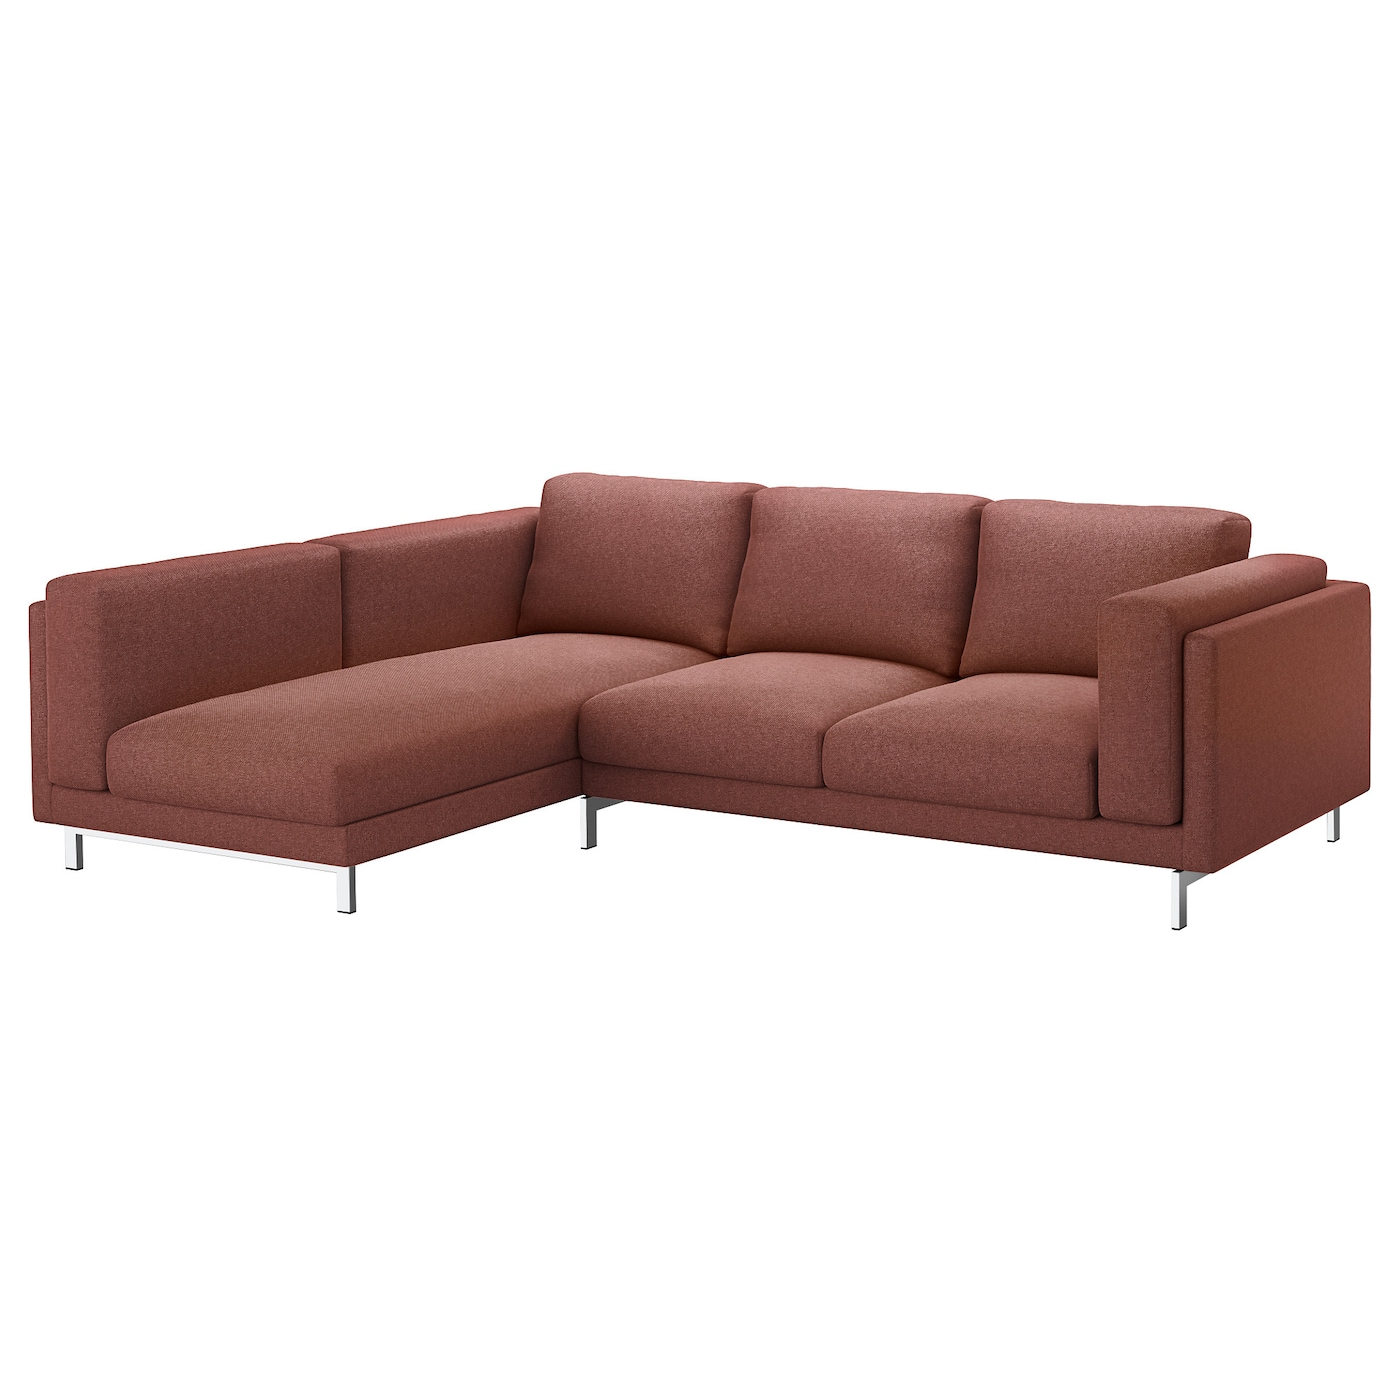 Nockeby two seat sofa w chaise longue left tallmyra rust for Chaise longue jardin ikea